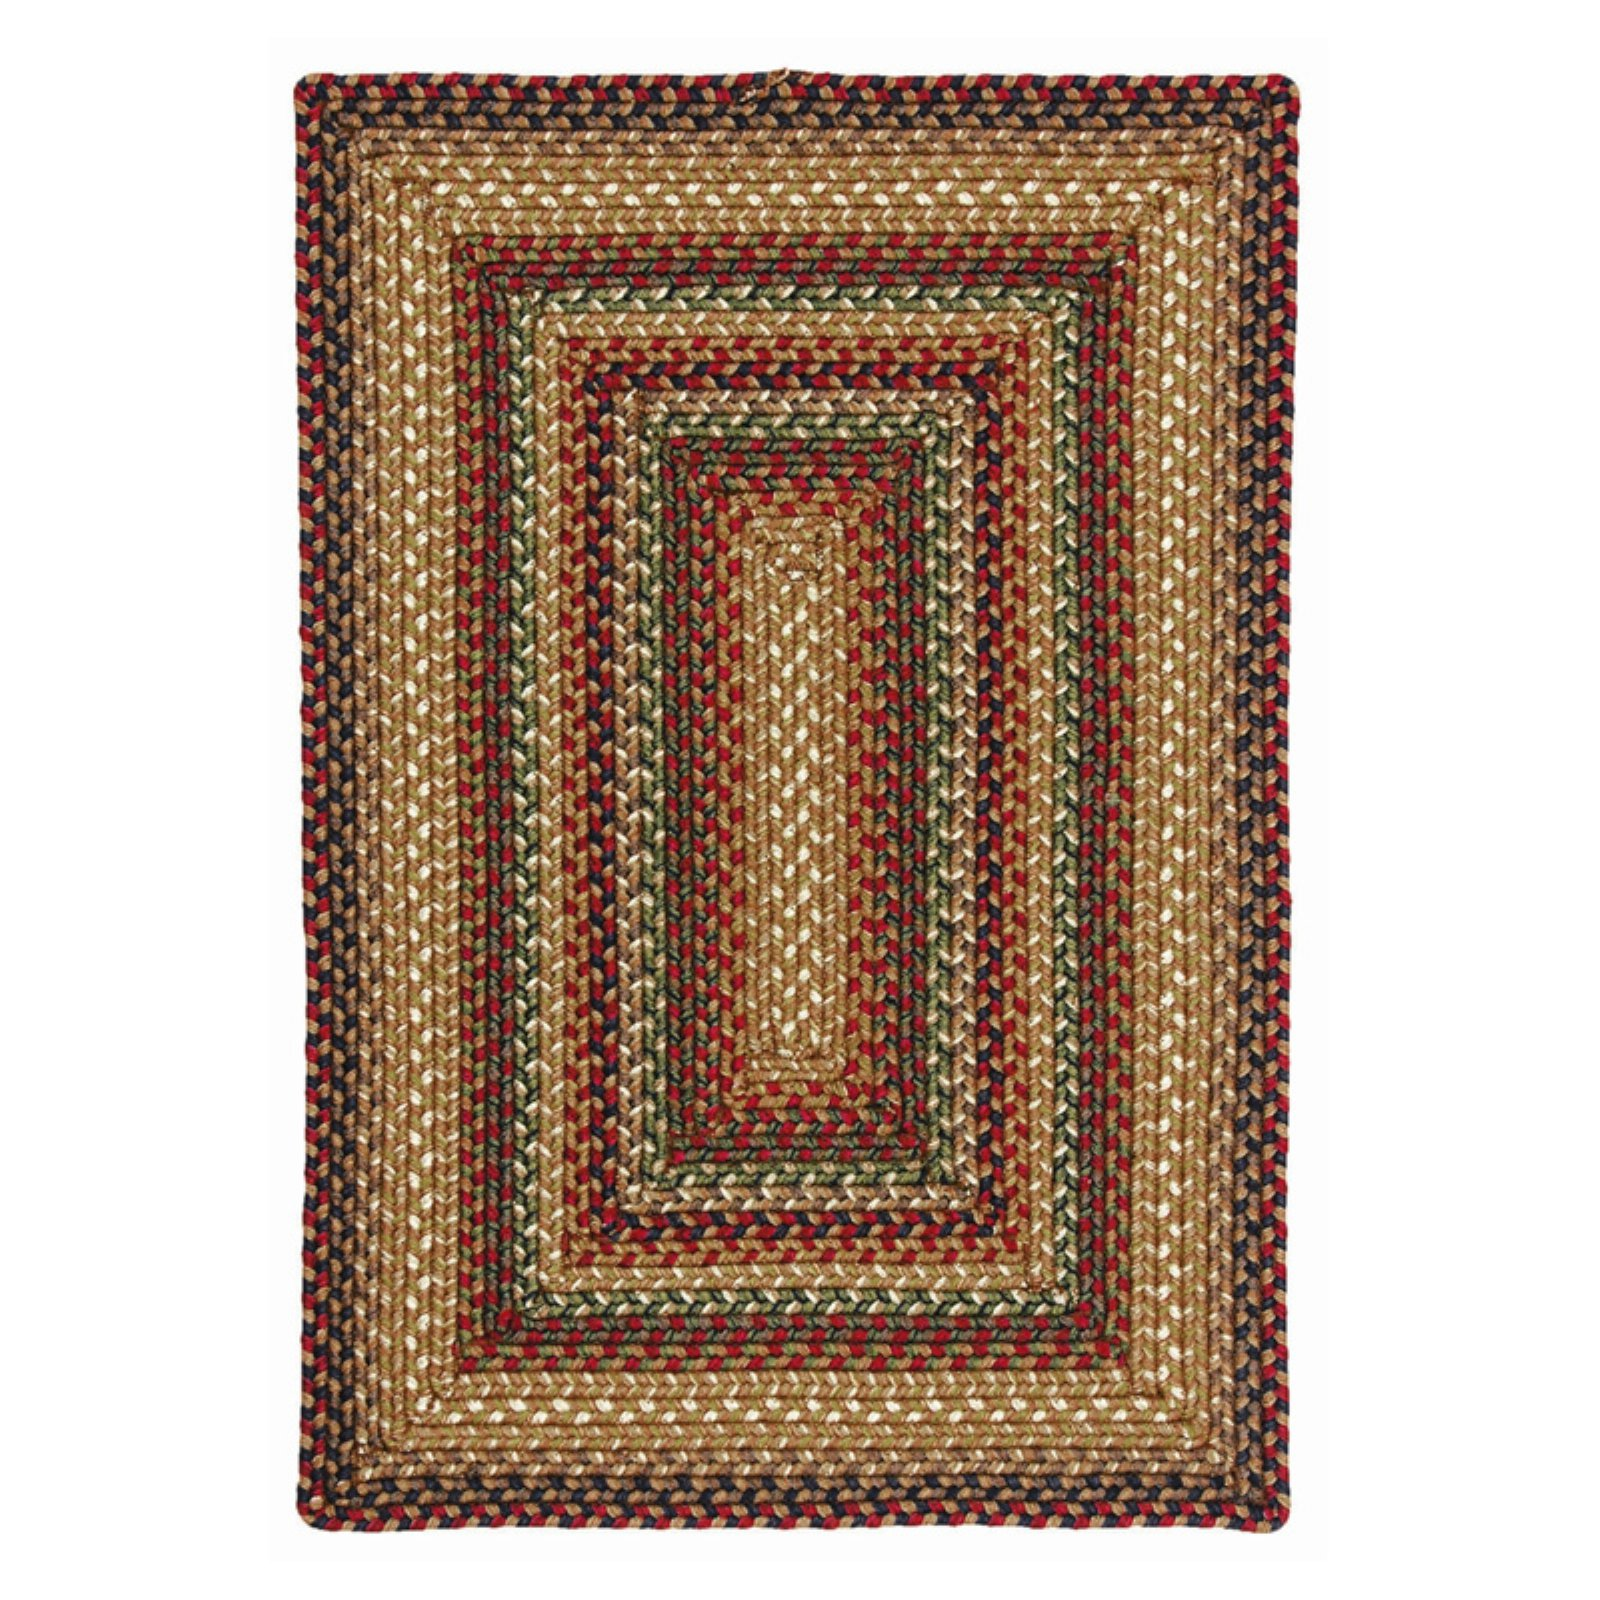 Homespice Decor Canterbury Braided Rug by Homespice Decor